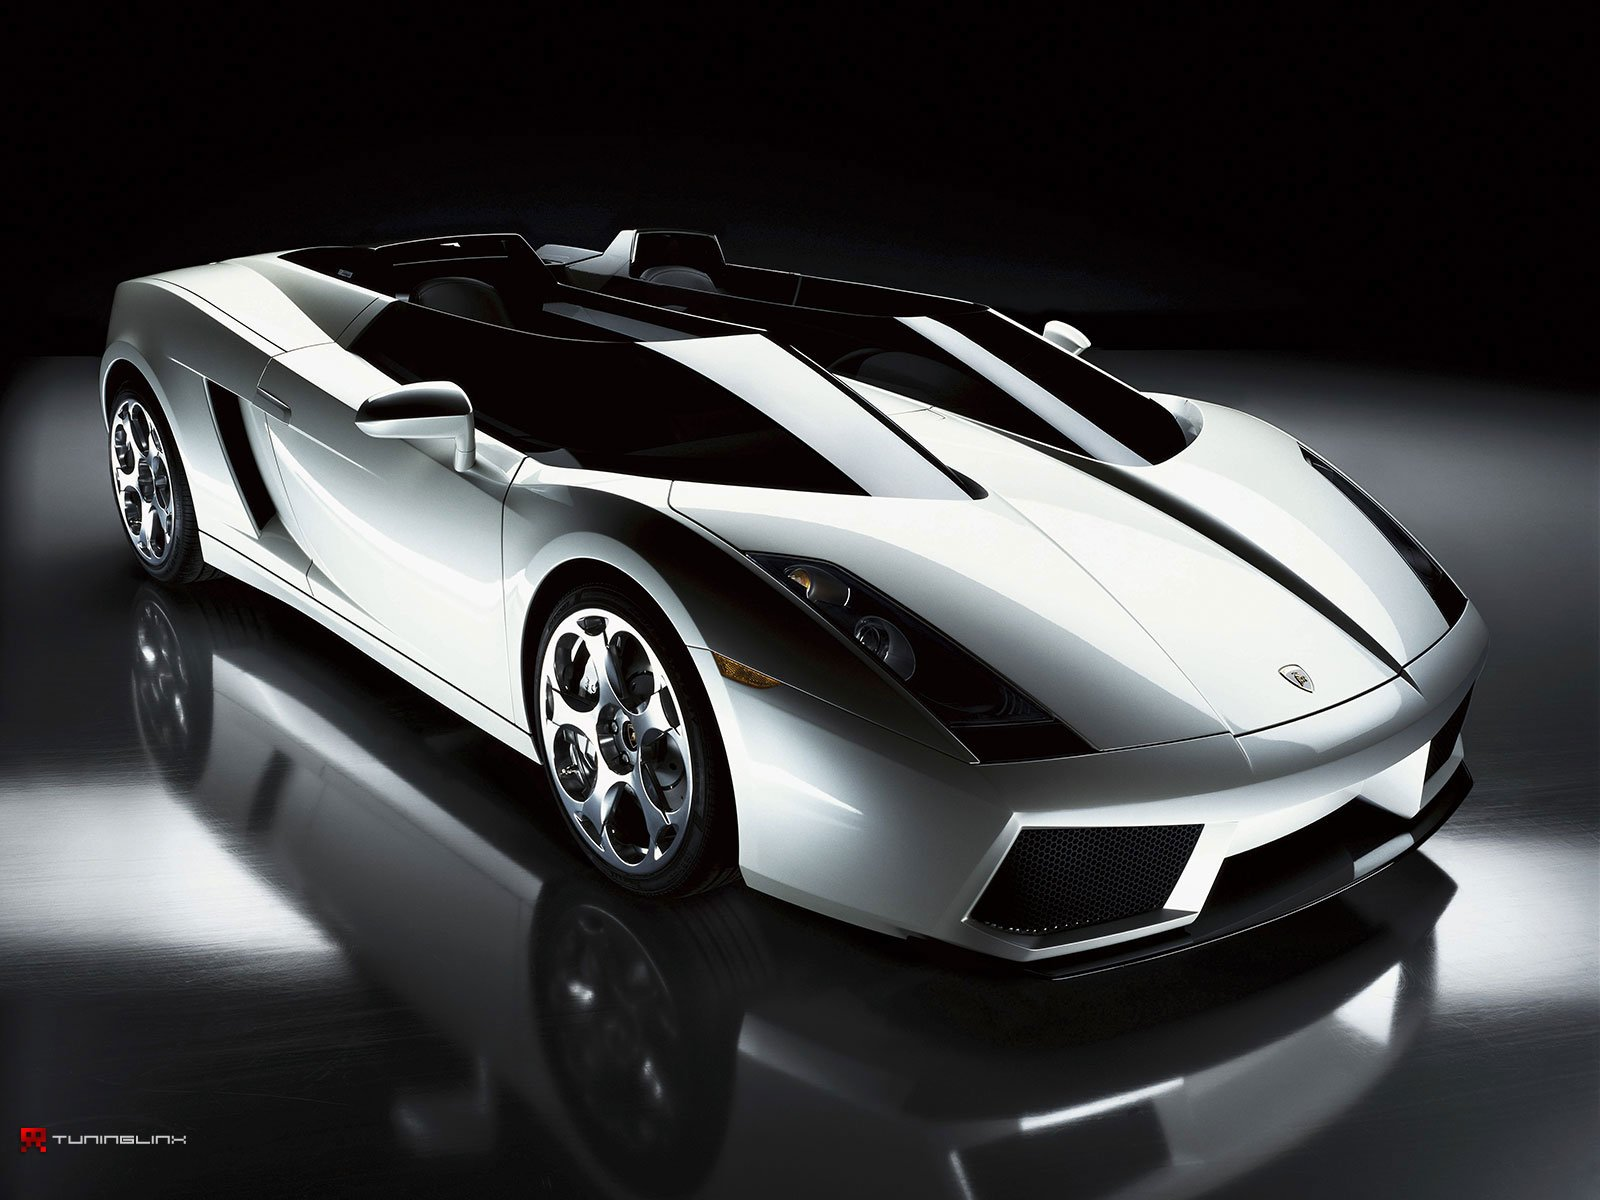 New Lamborghini Car Wallpapers Hd Nice Wallpapers On This Month